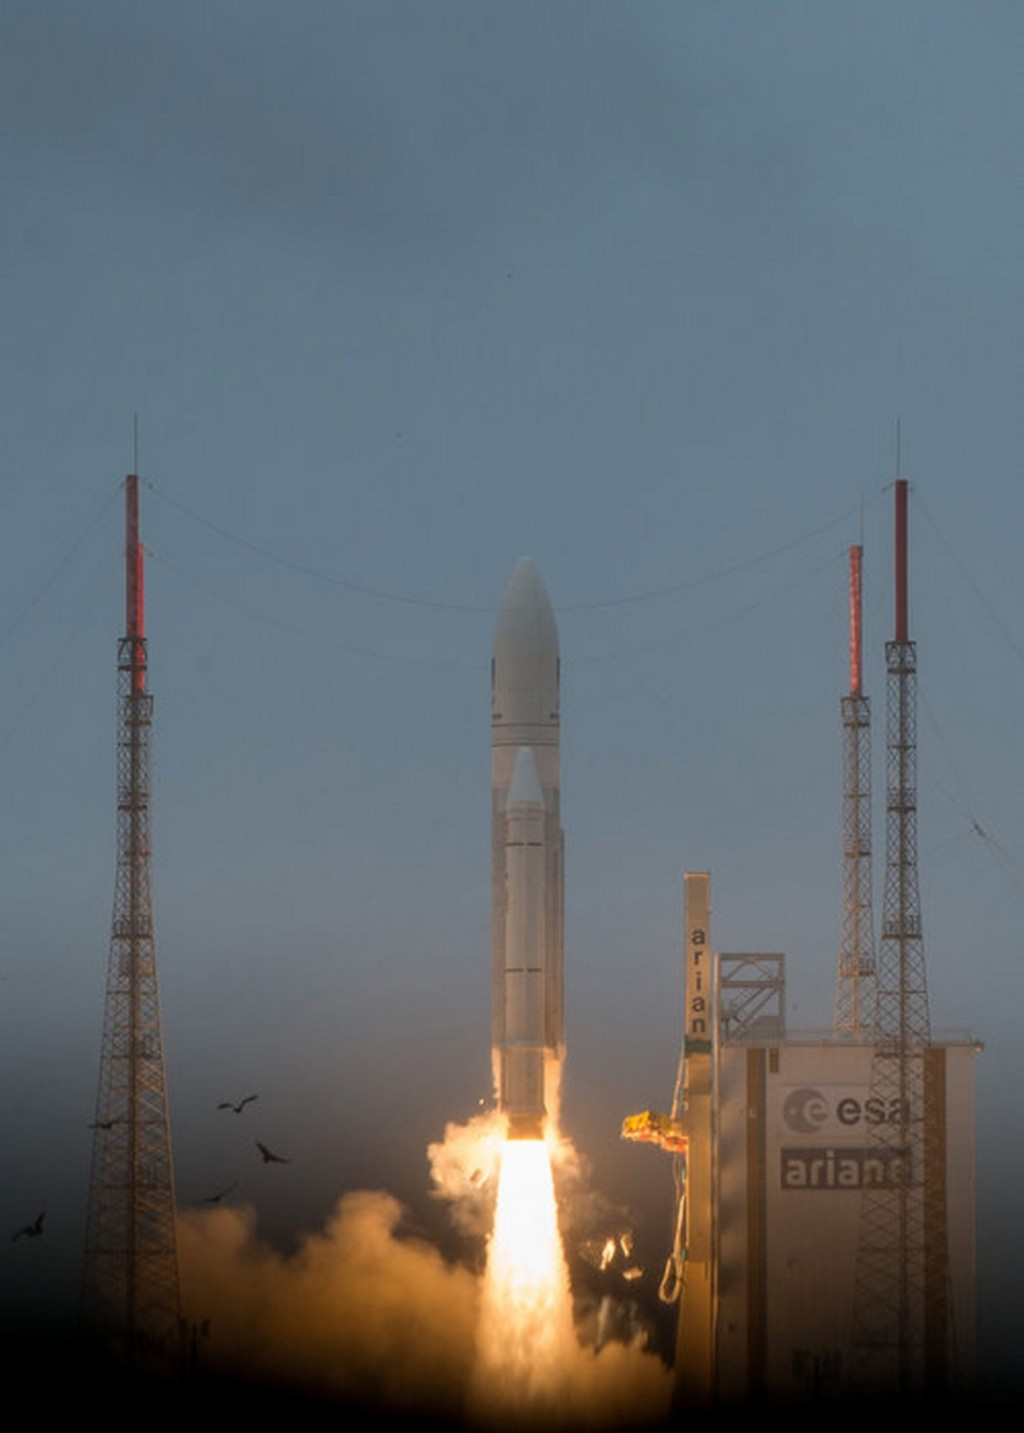 Galileo lifts off node full image 2 ESA Manuel Pedoussaut